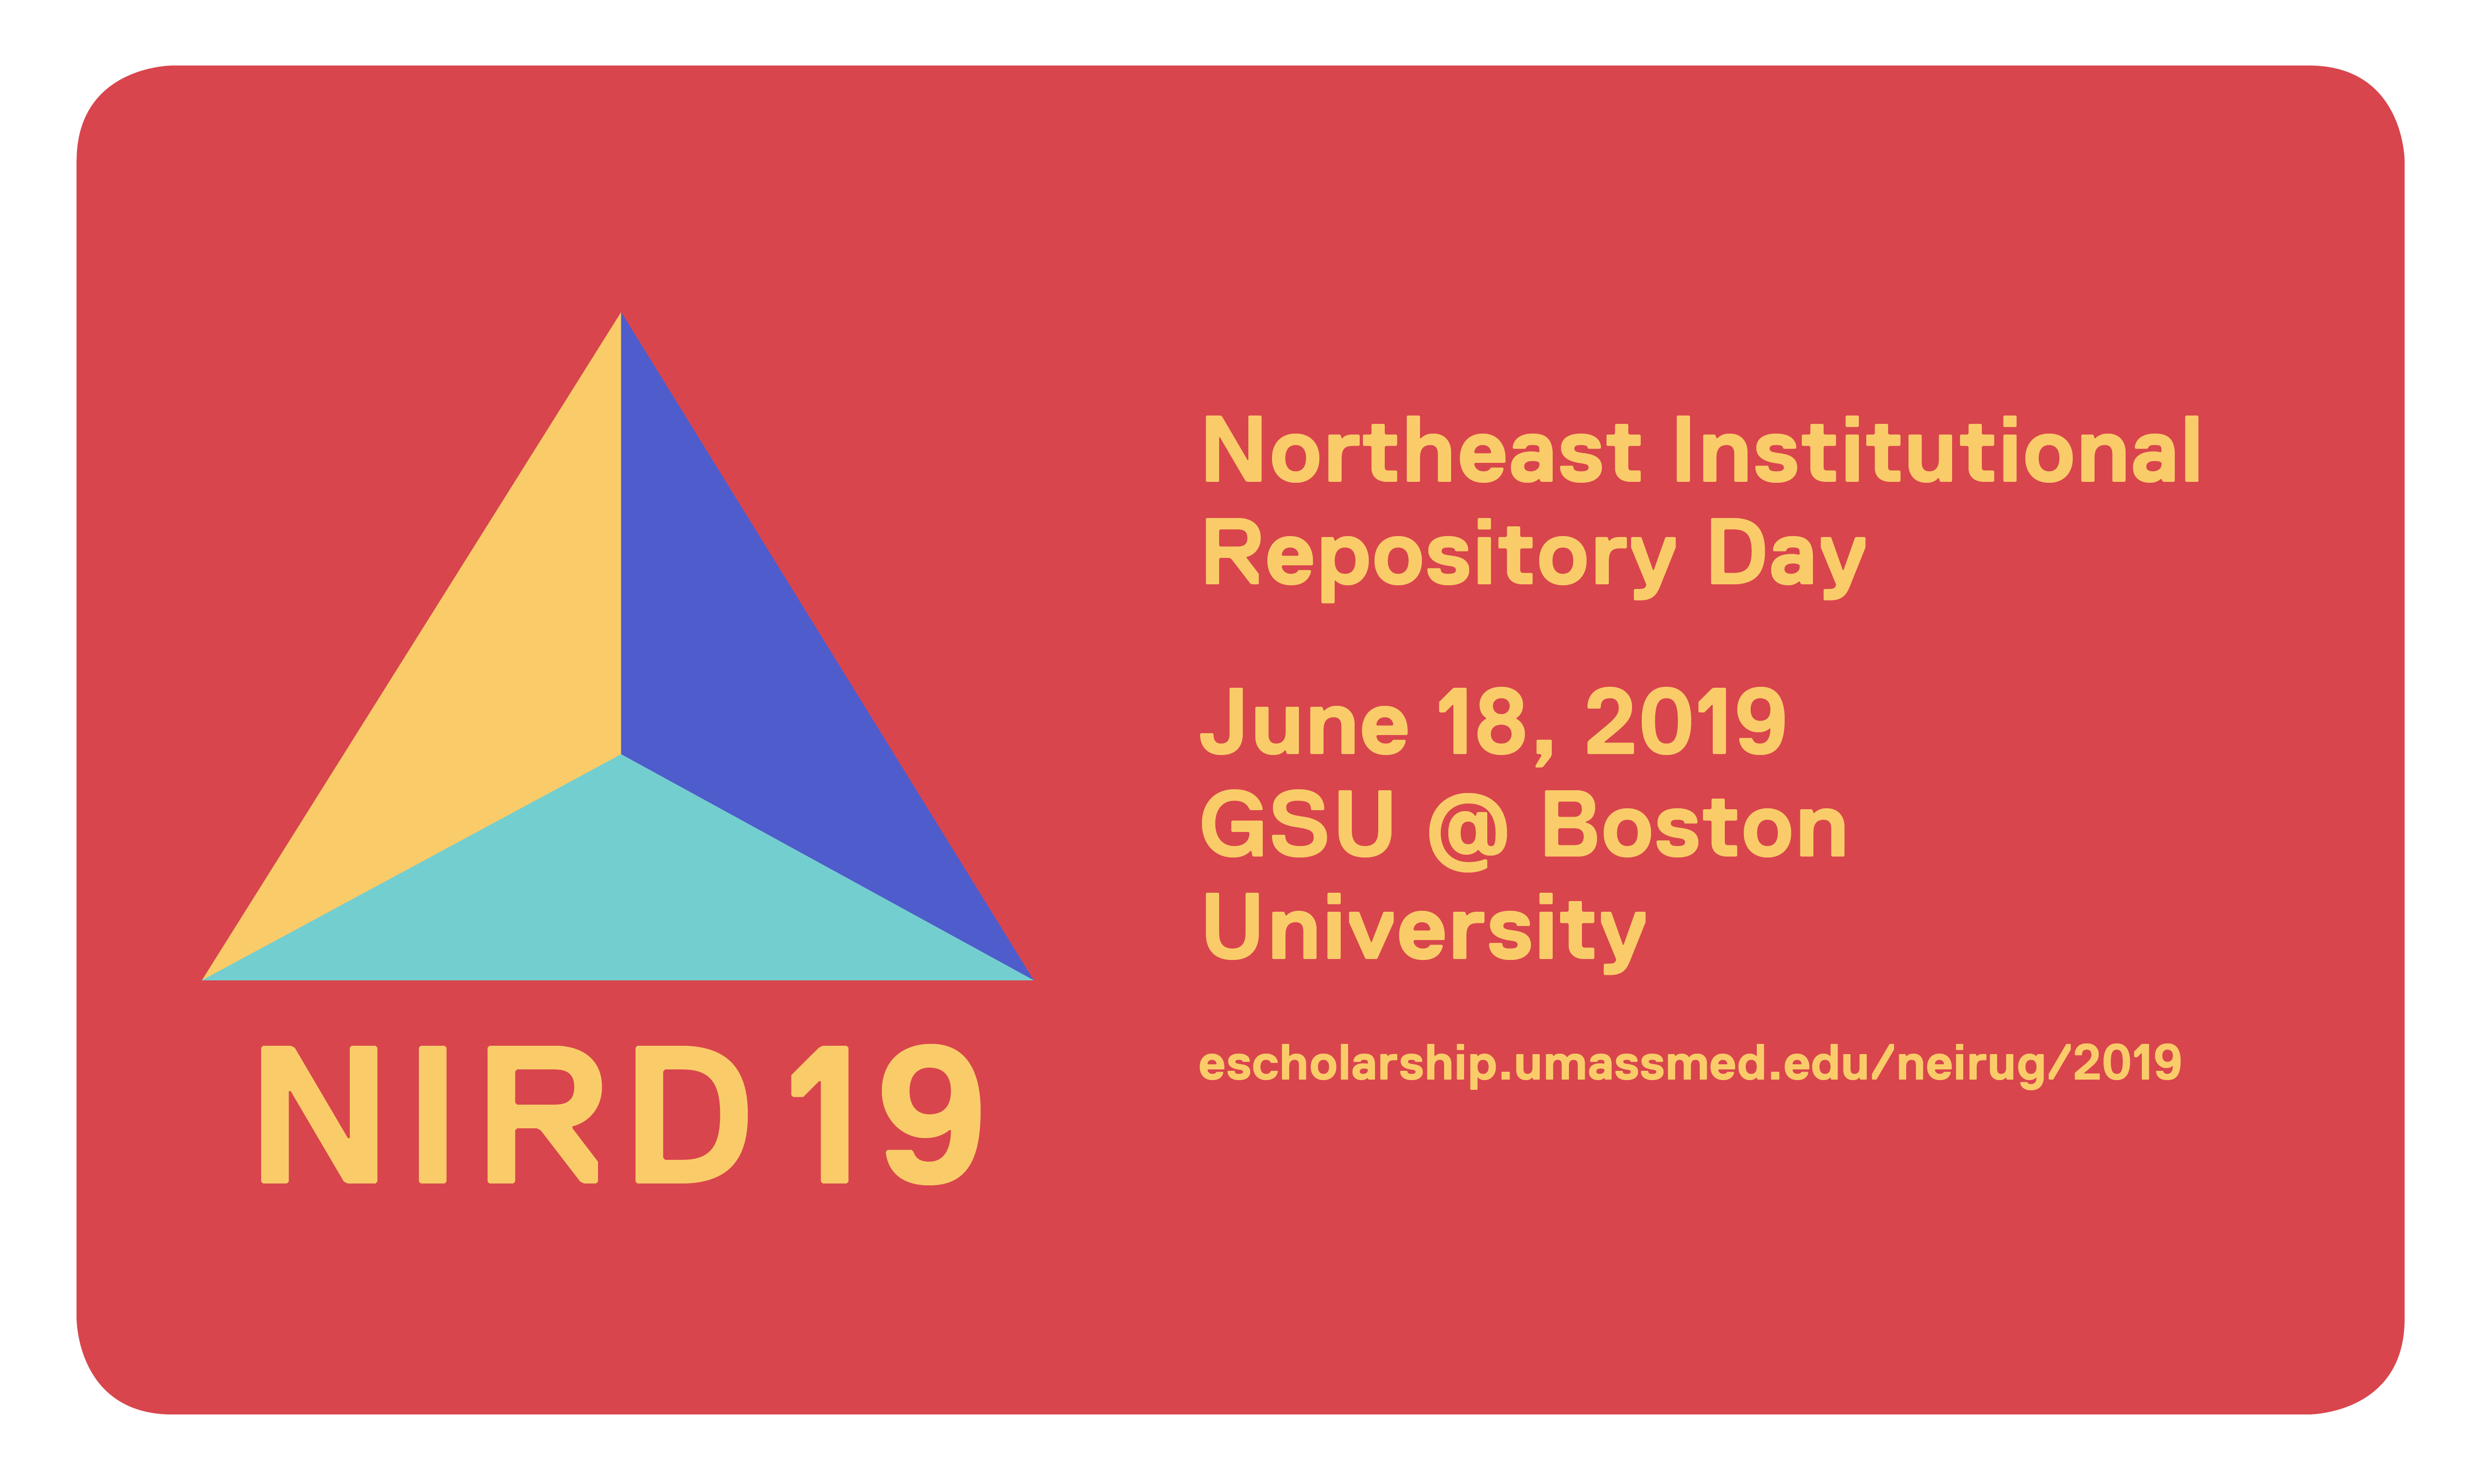 2019 Northeast Institutional Repository Day